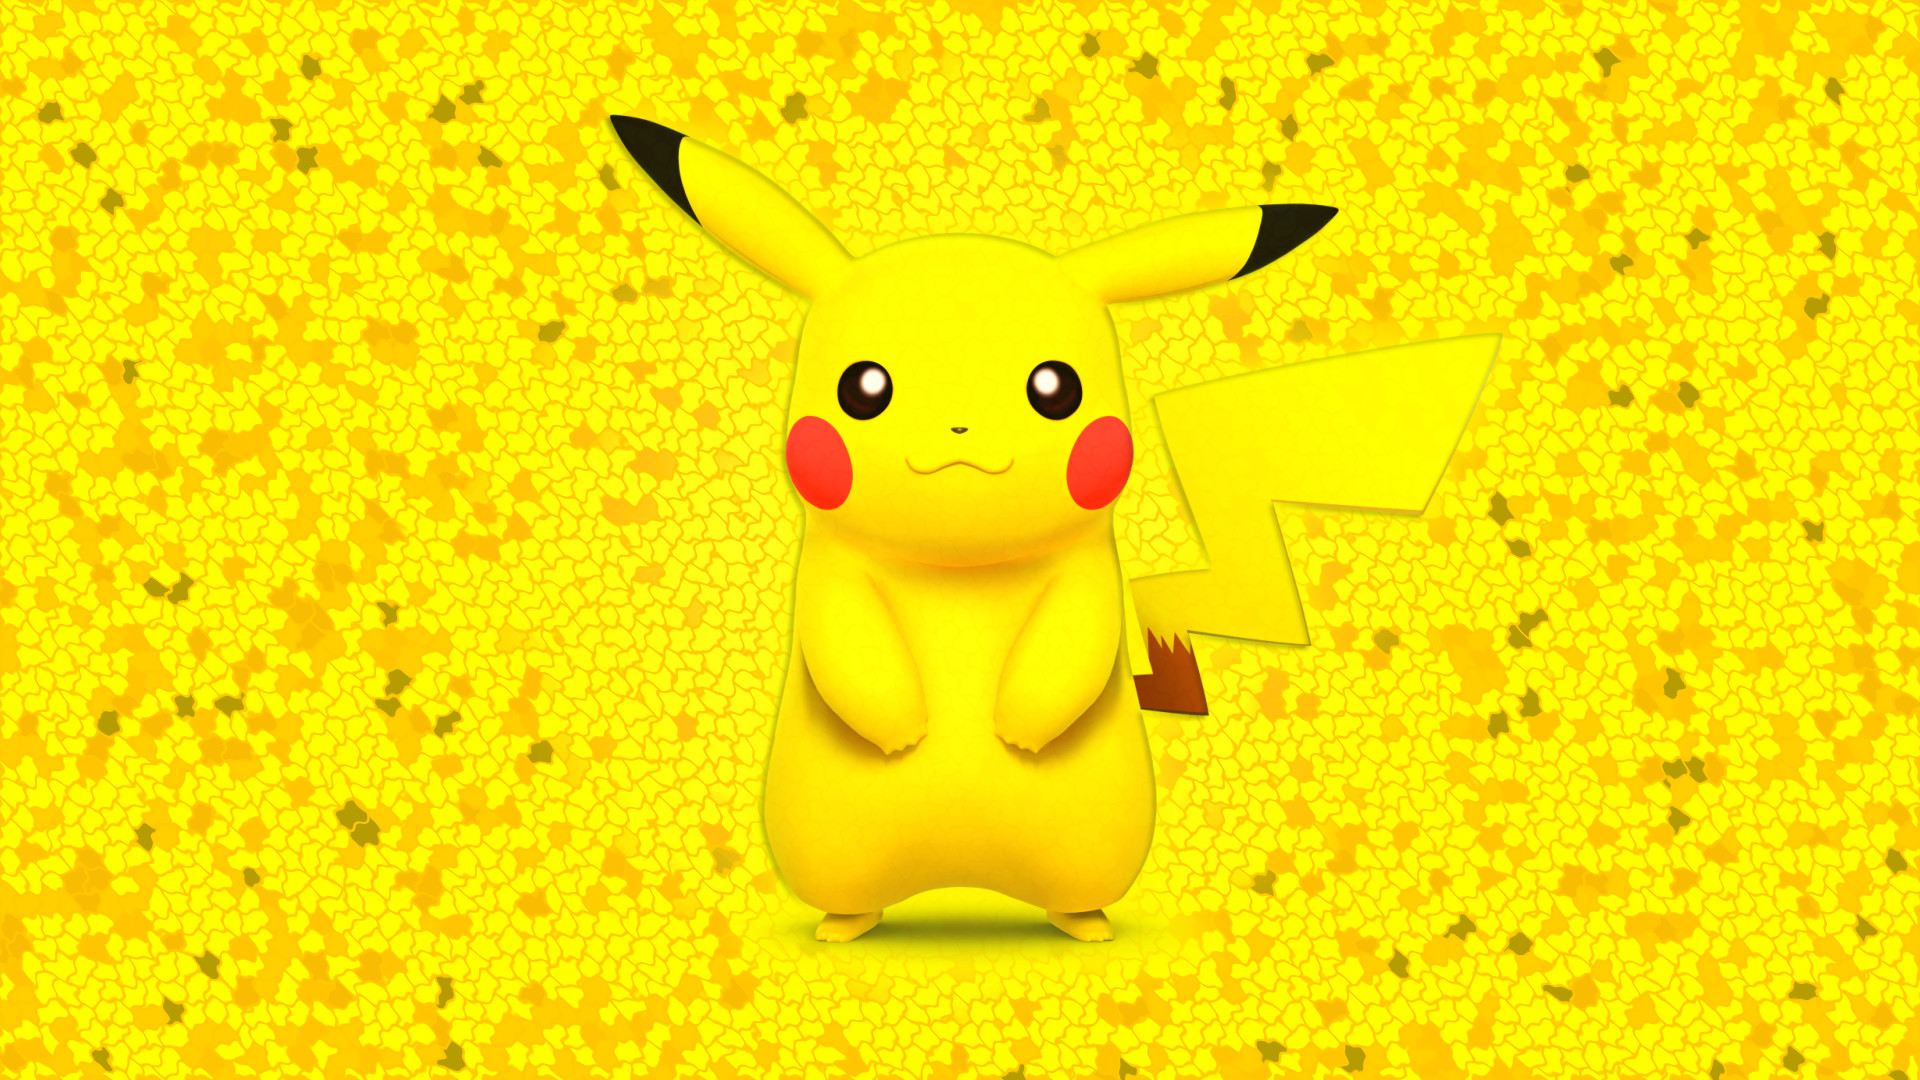 1920x1080 237 Pikachu HD Wallpapers | Backgrounds - Wallpaper Abyss